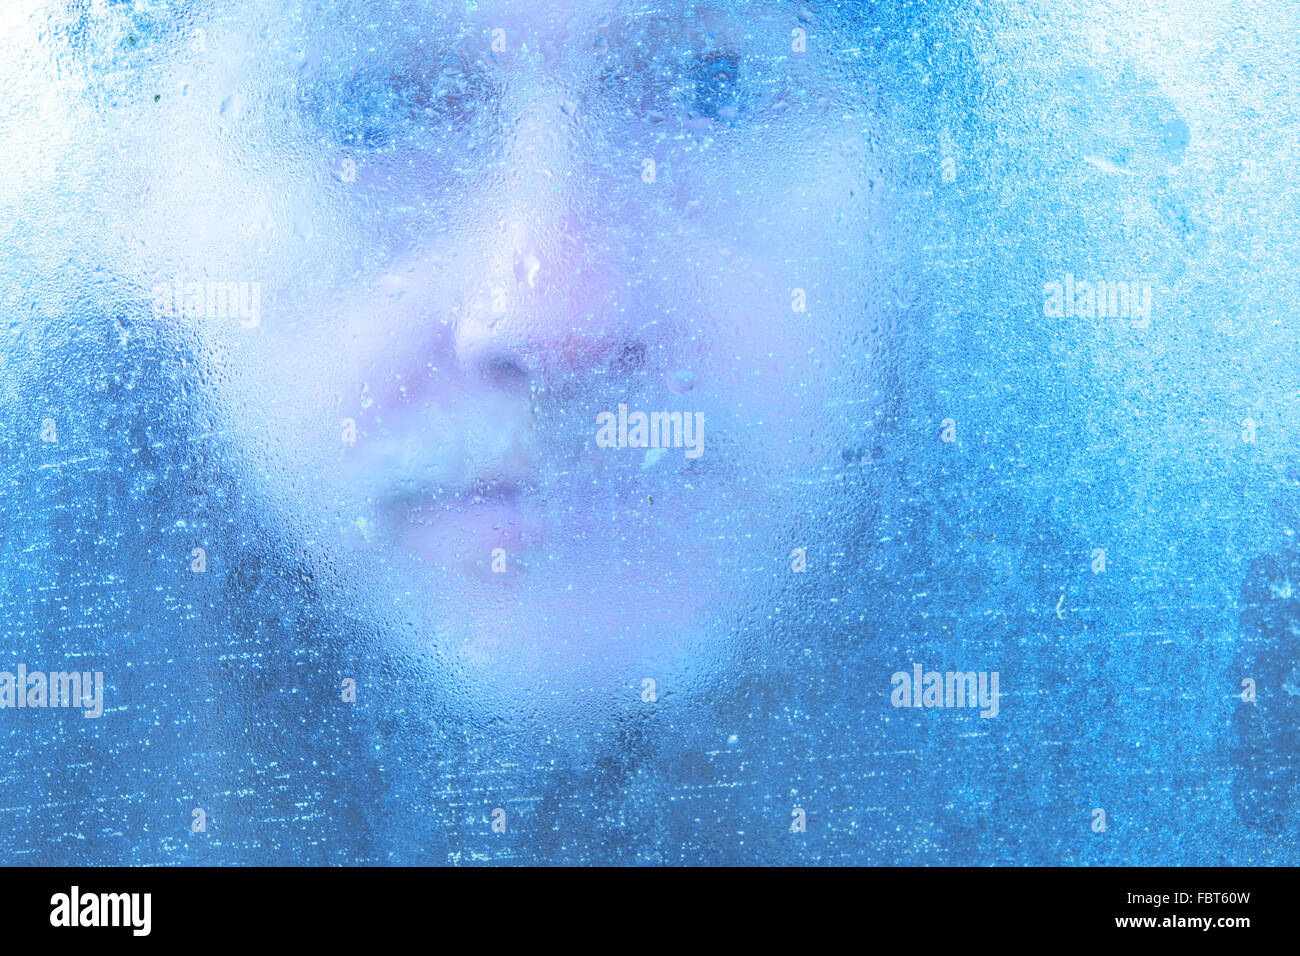 Winter man looking through window covered in ice and condensation UK - Stock Image